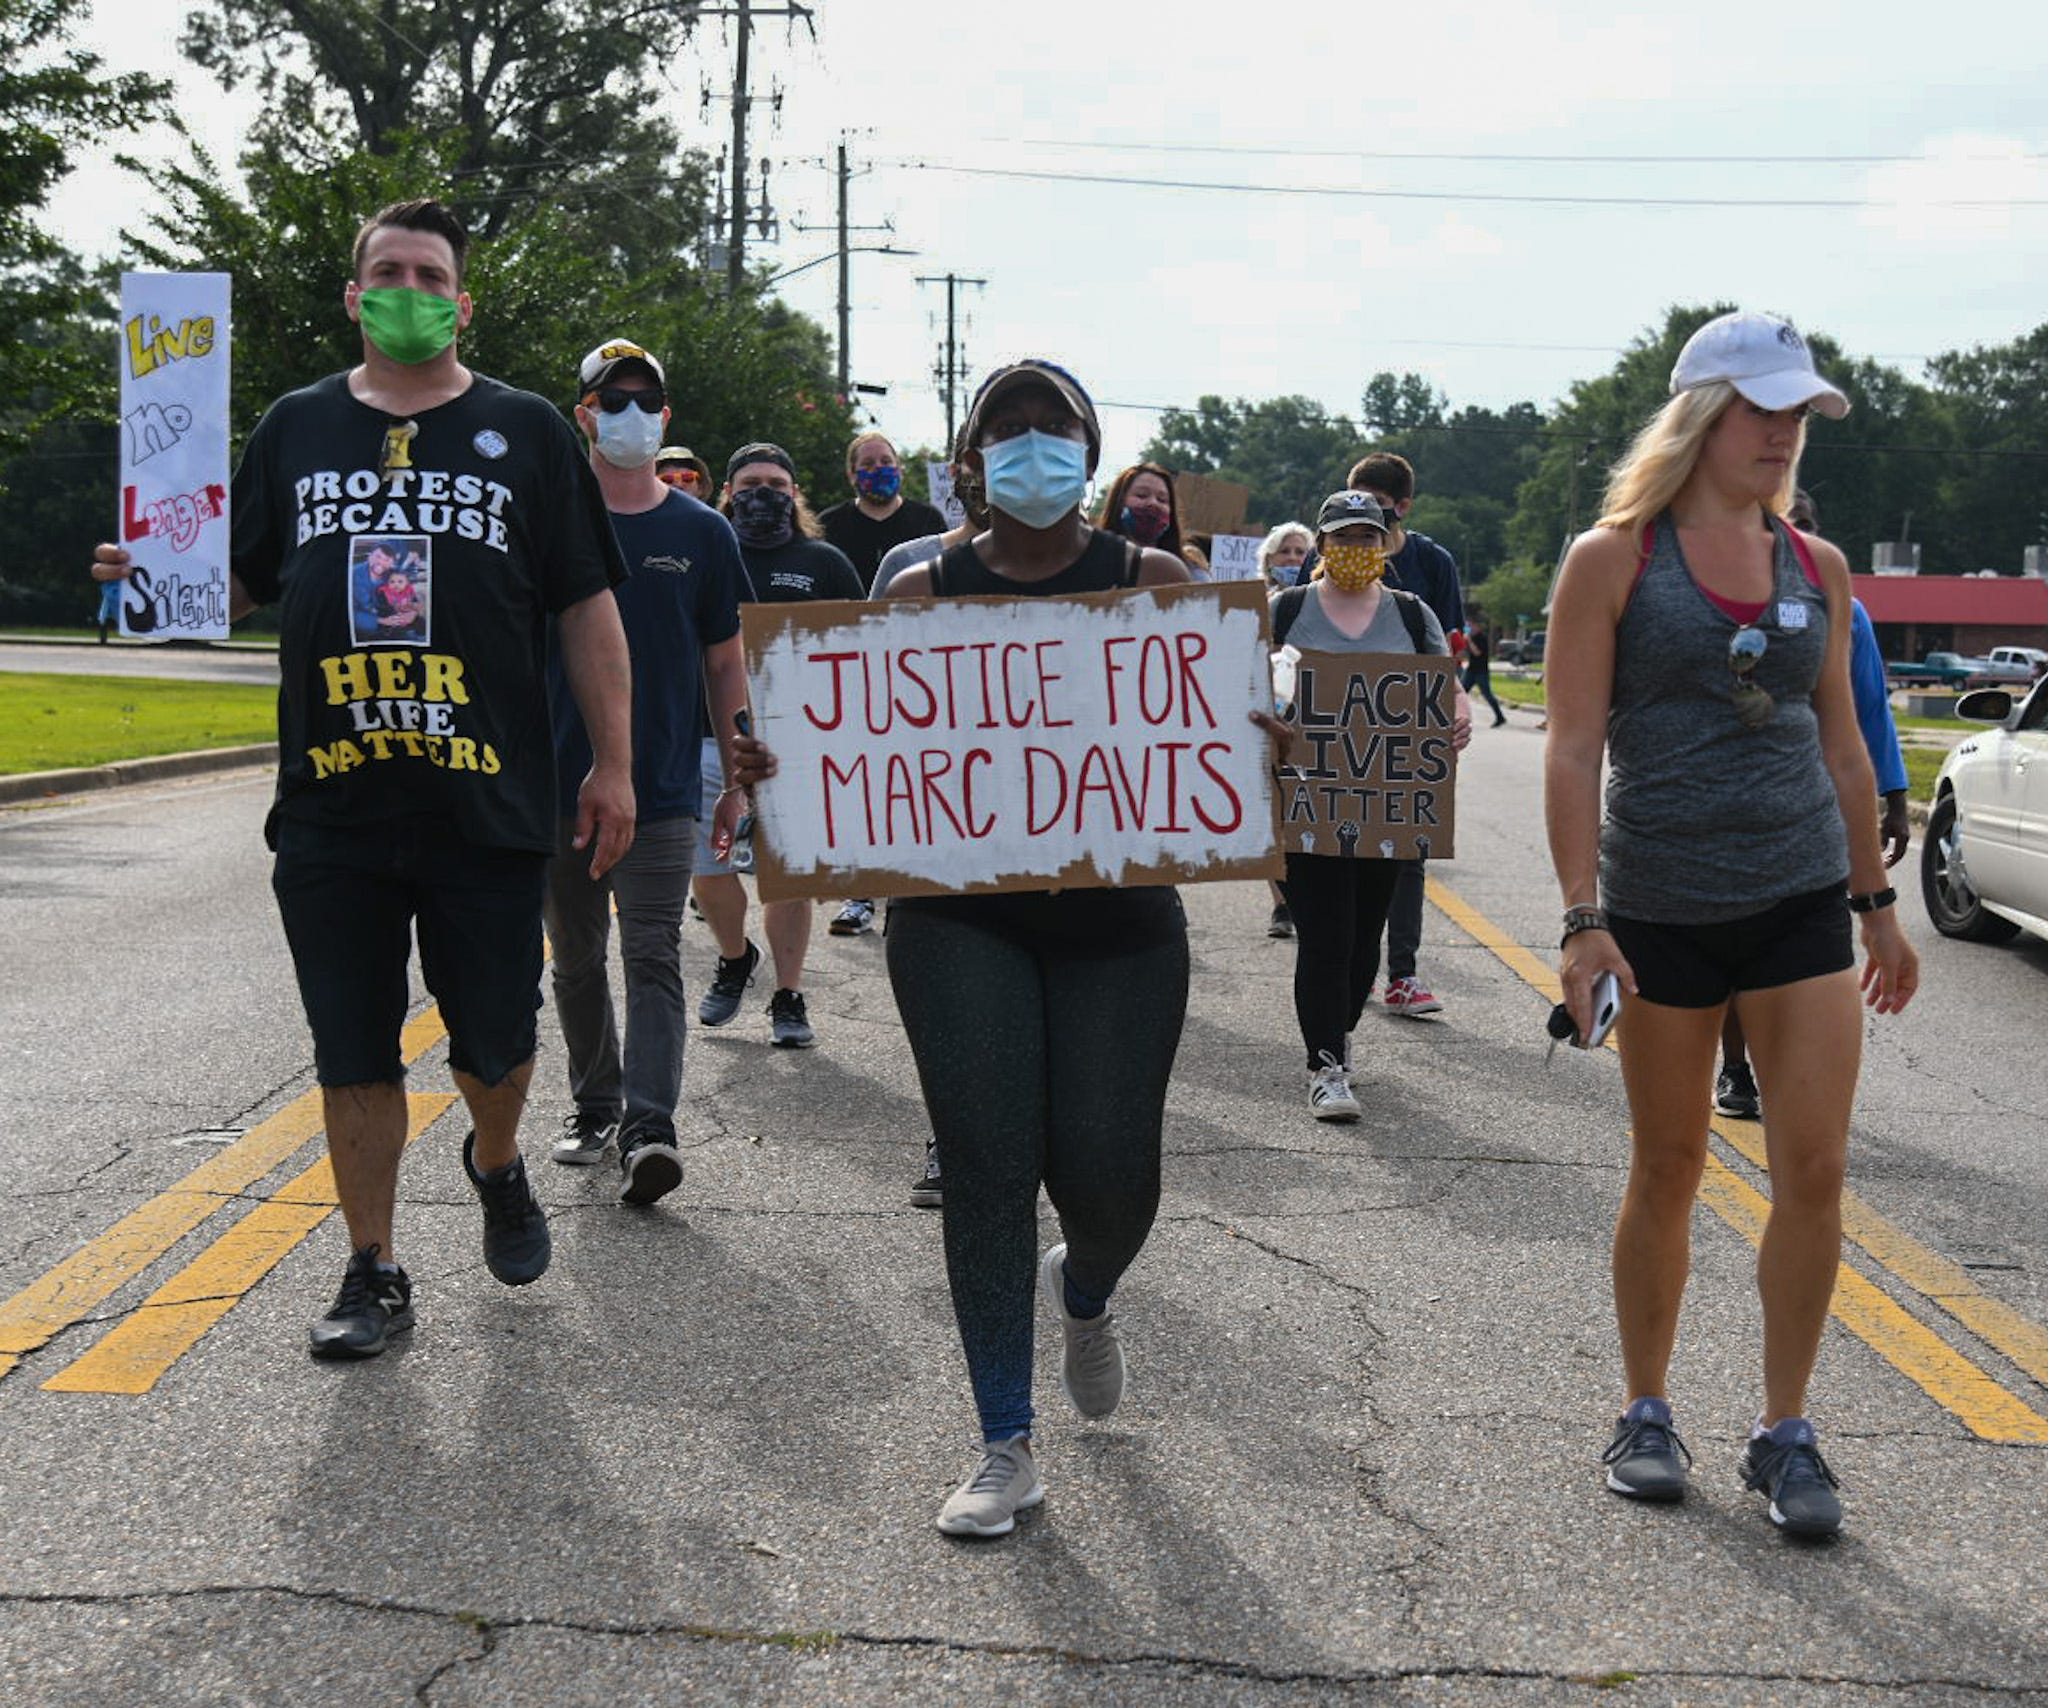 Protesters take part in a unity walk starting at Petal City Hall in Petal, Miss., on June 6, 2020.